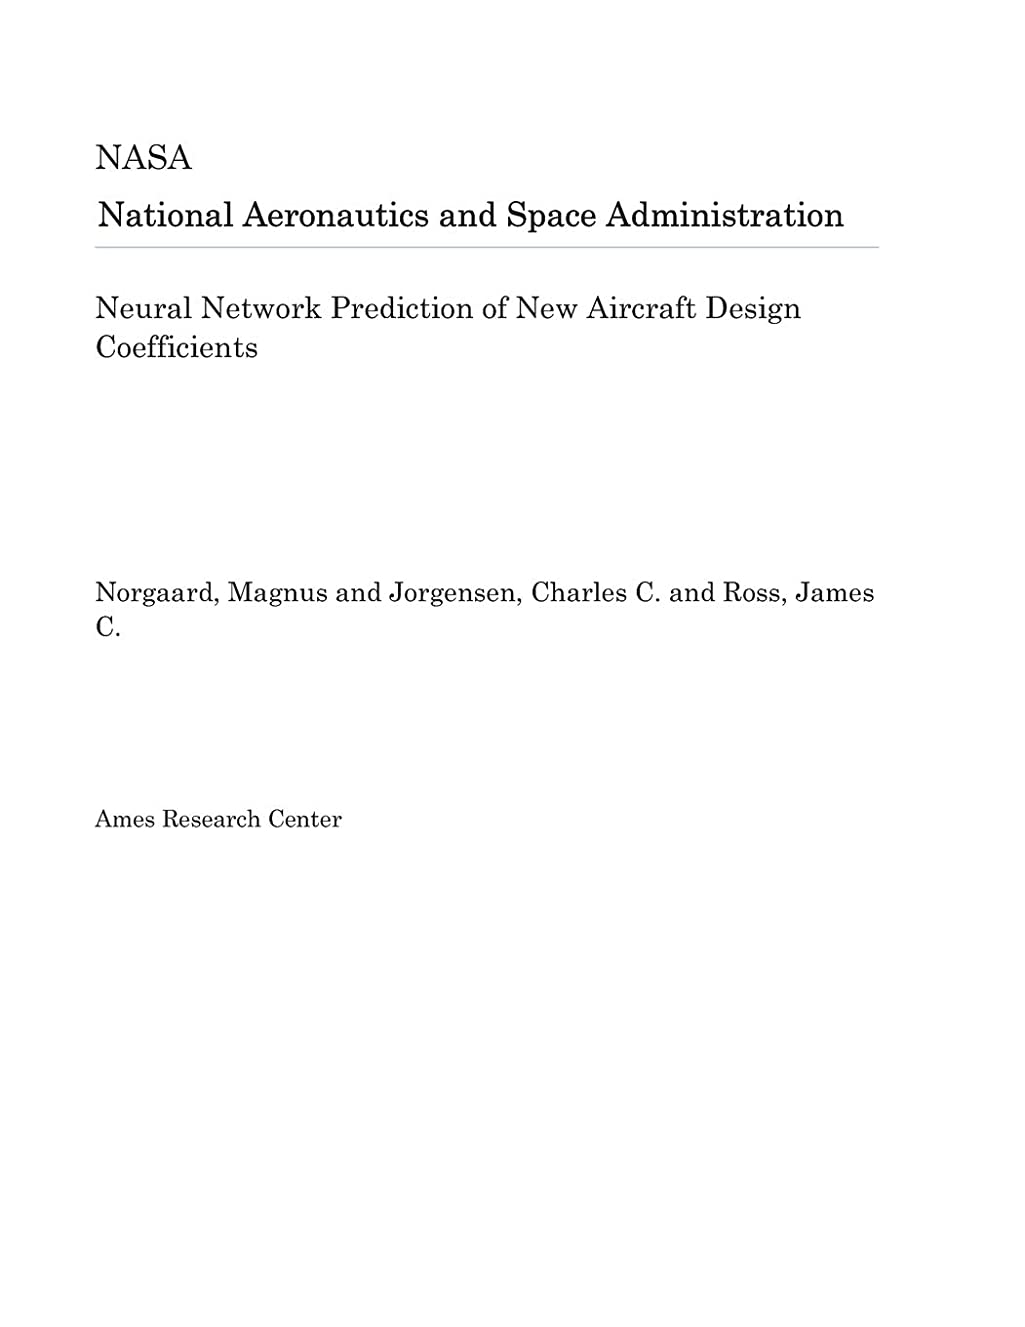 Neural Network Prediction of New Aircraft Design Coefficients